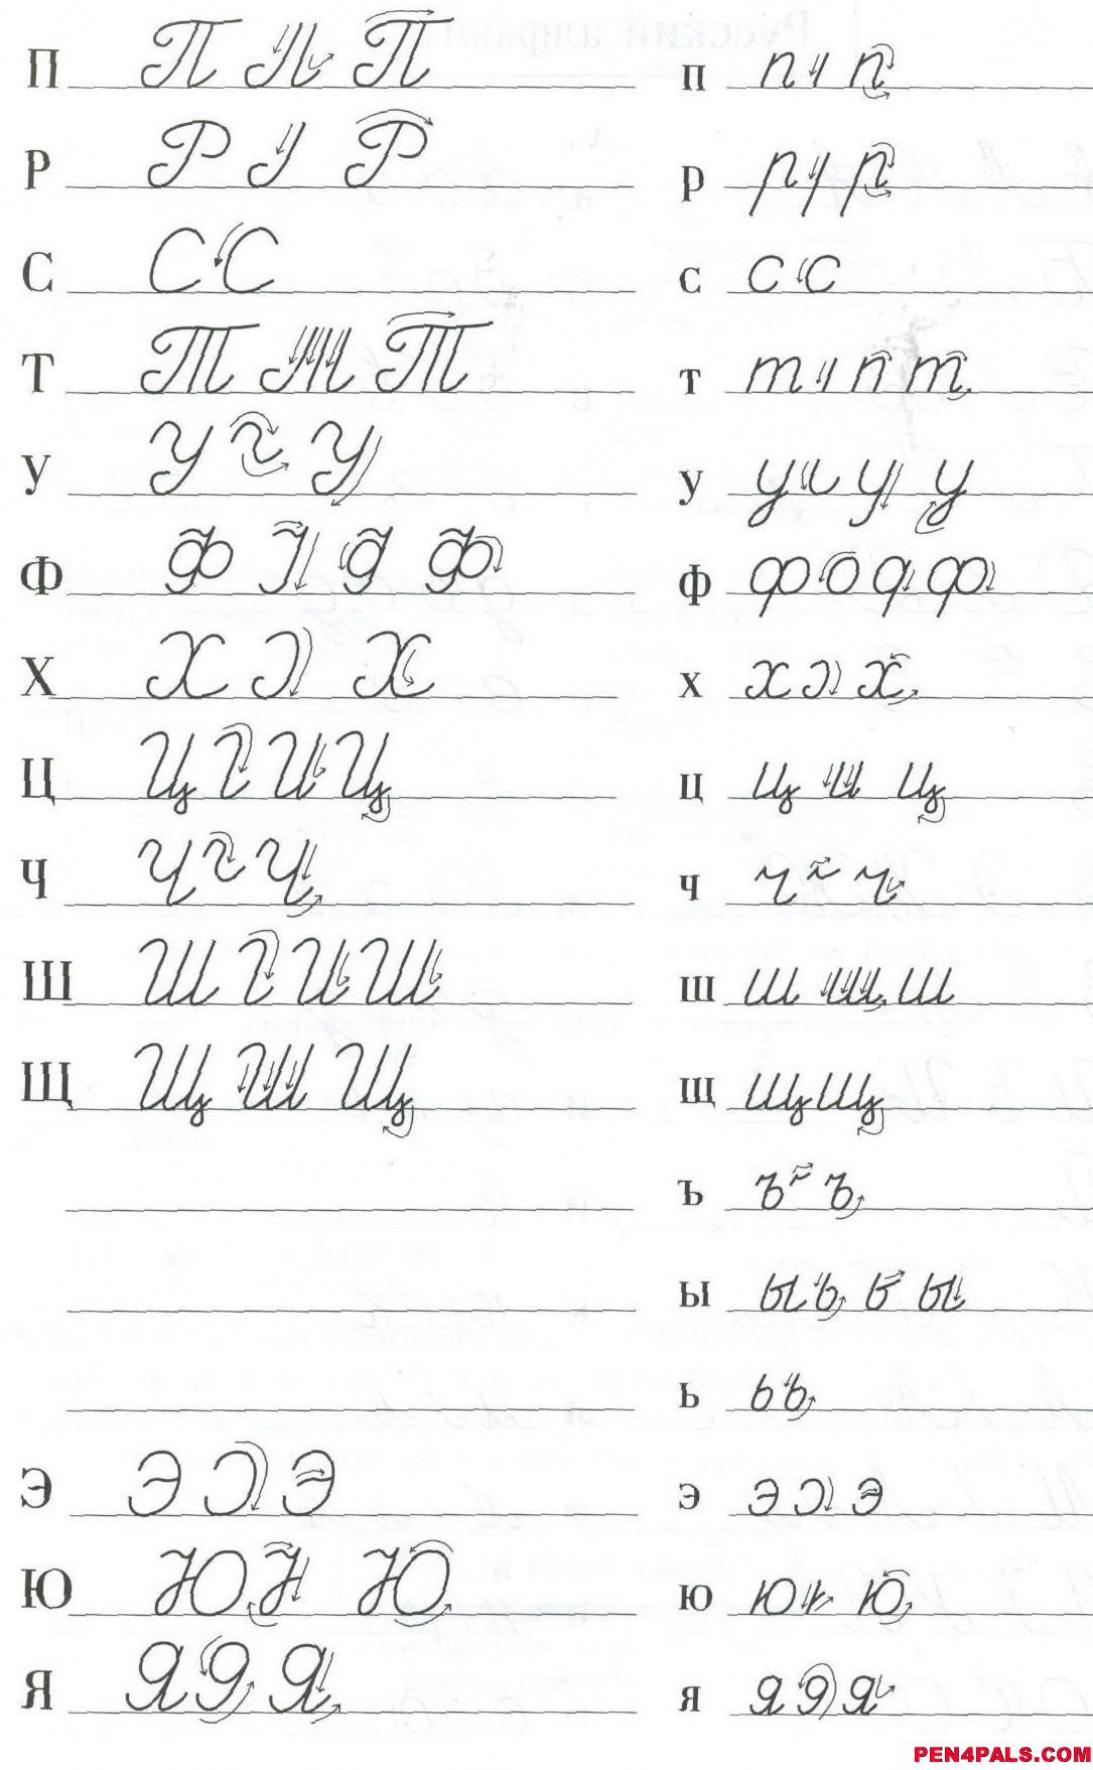 Worksheets Handwriting Worksheets Pdf russian cursive handwriting worksheets free download pdf sheet 2 proper writing of handwritten letters